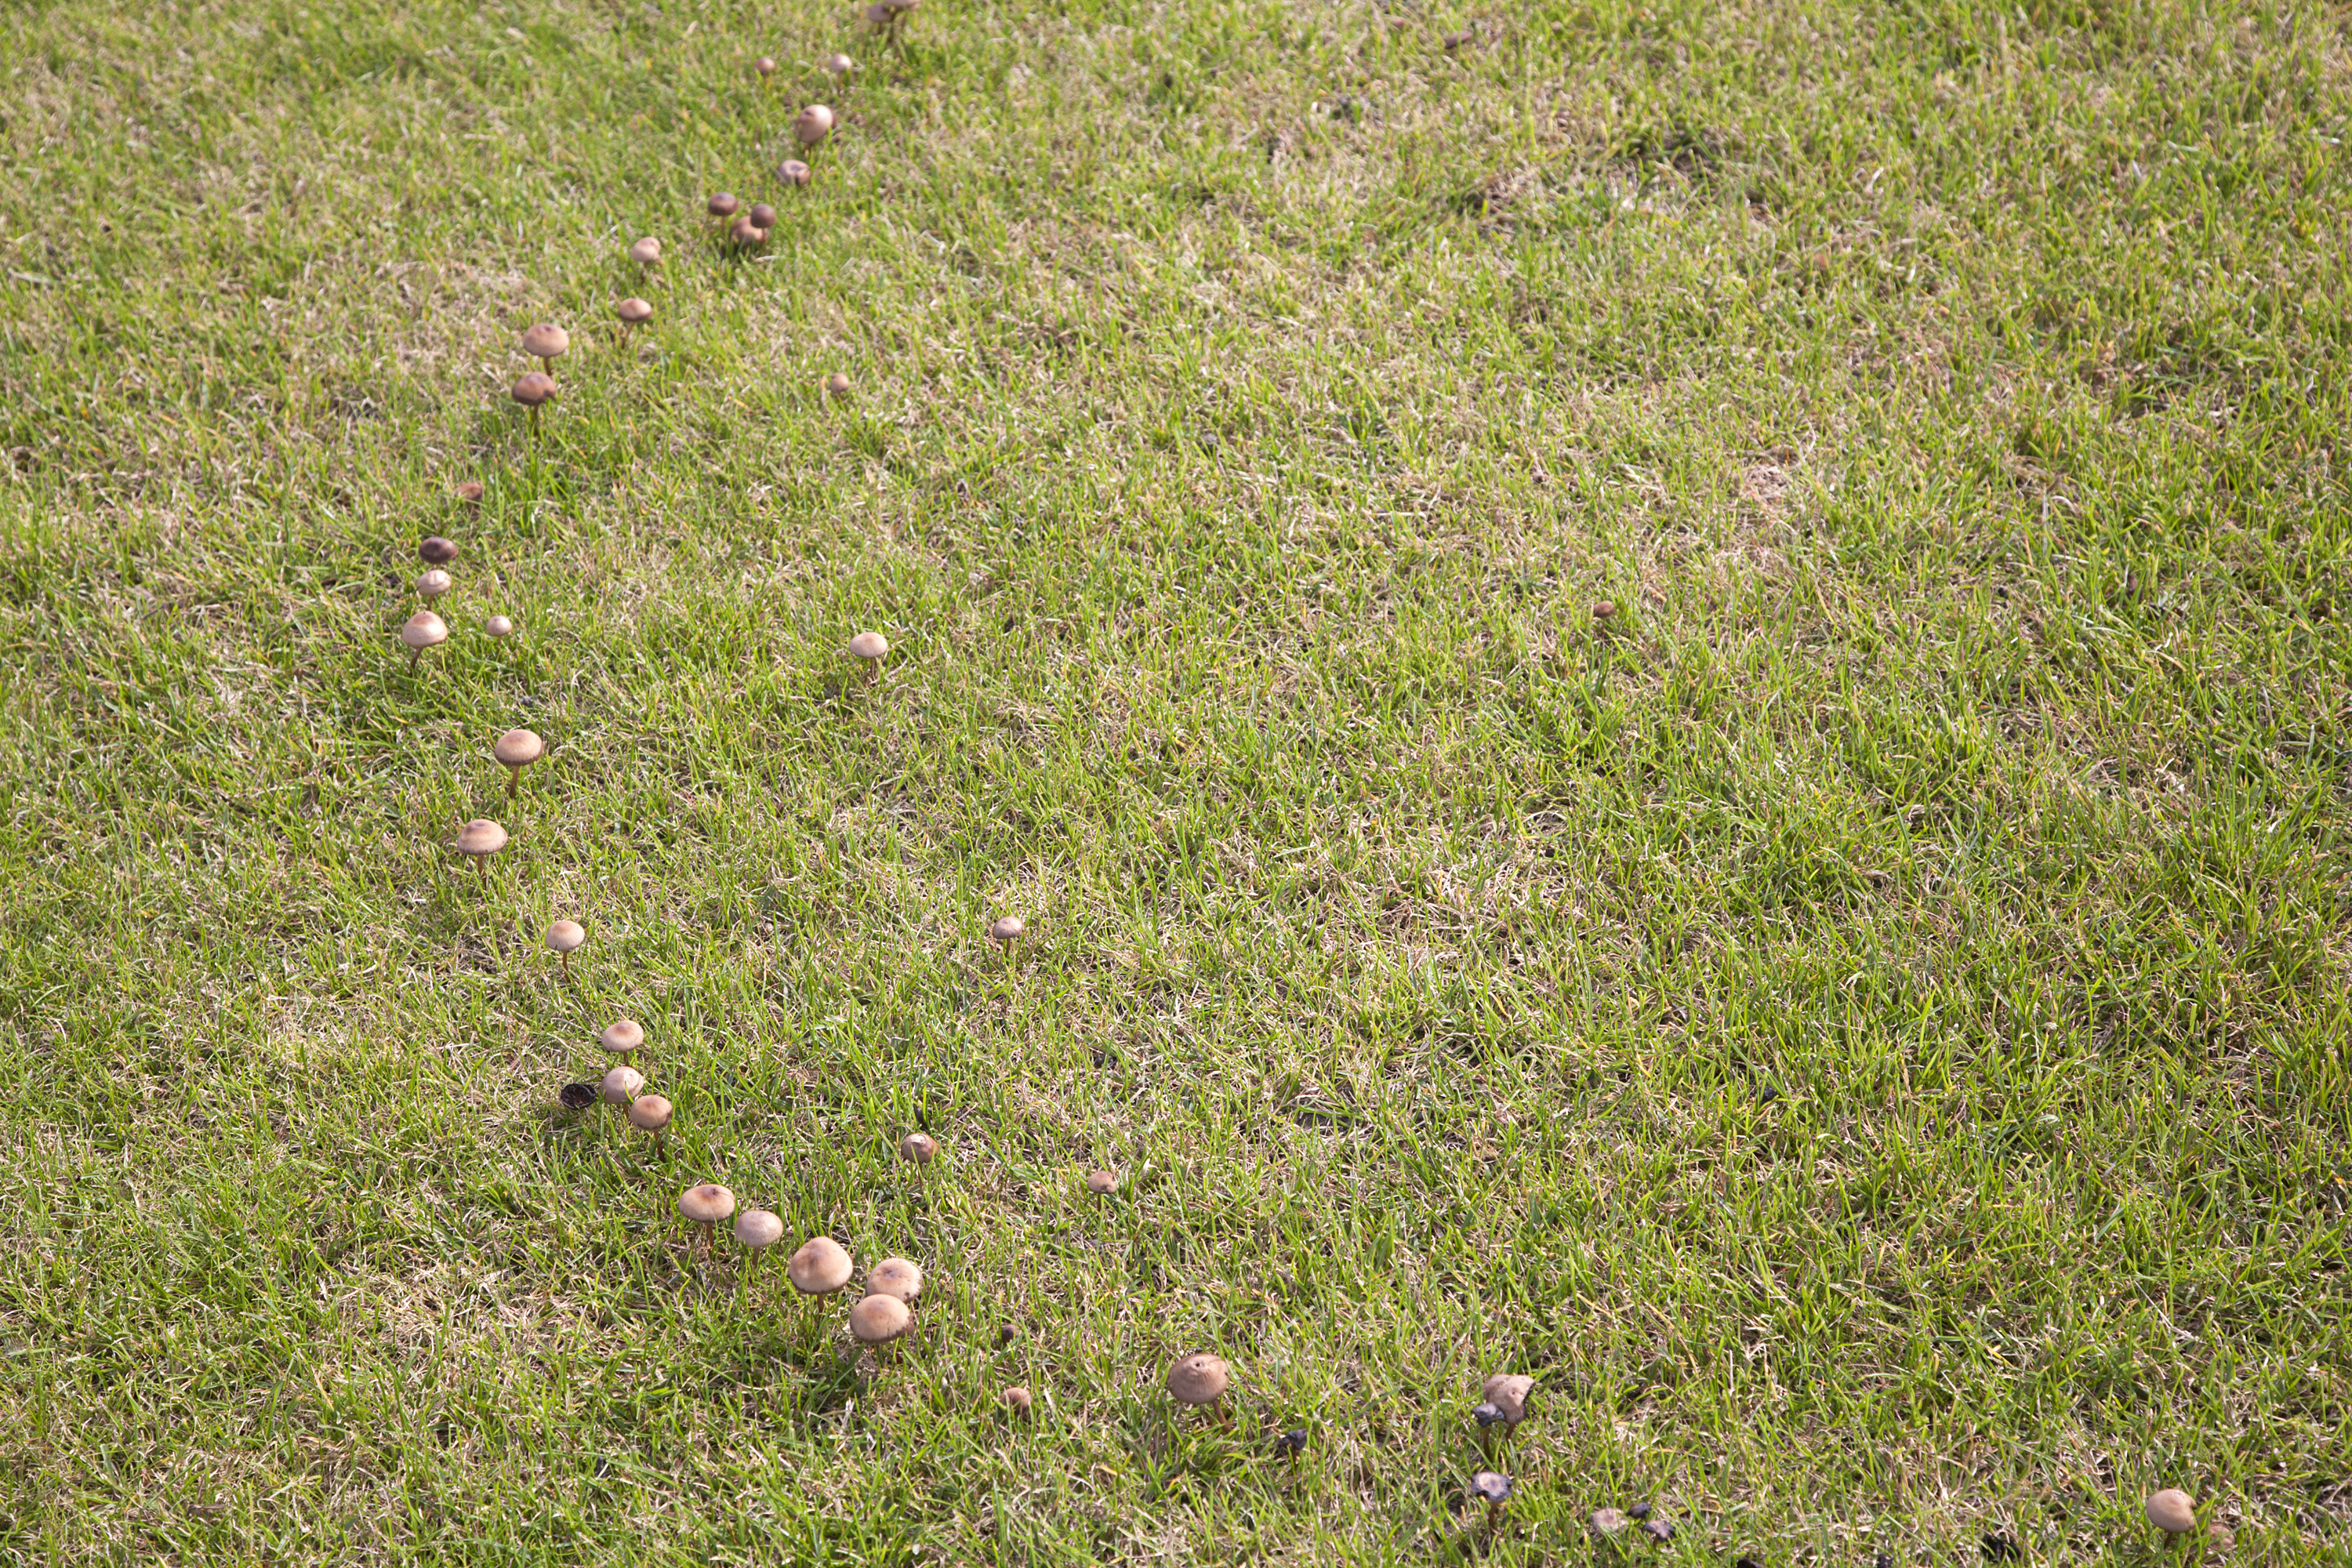 shaped dark circular on fairy ring lawn blog my green pacocha strange found colored disease rings